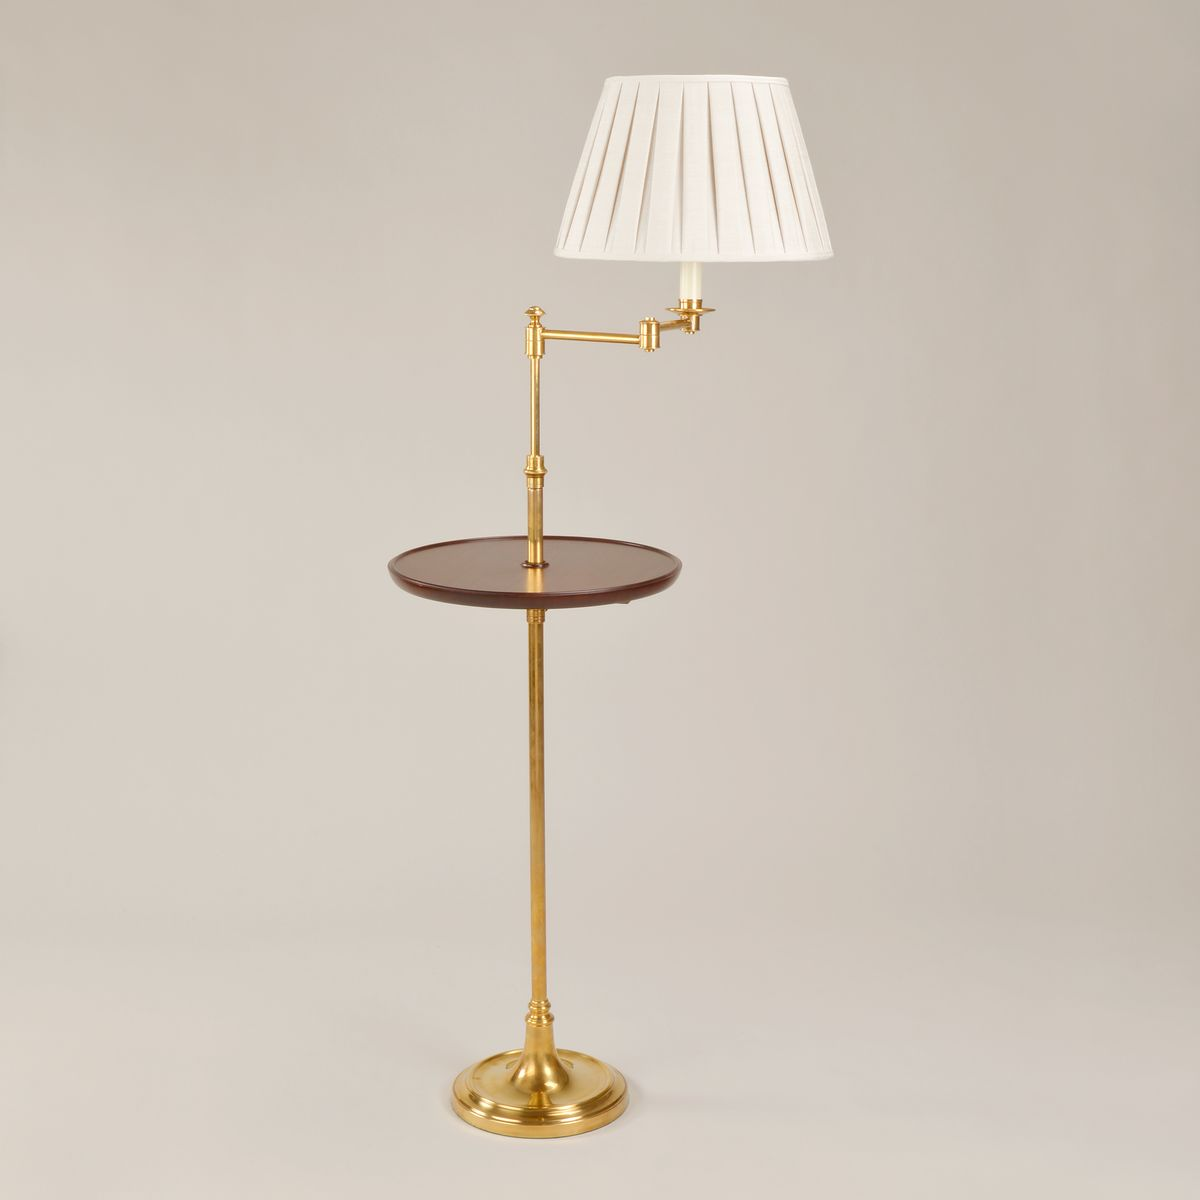 Sherborne Floor Light - Brass | Nicholas Engert Interiors